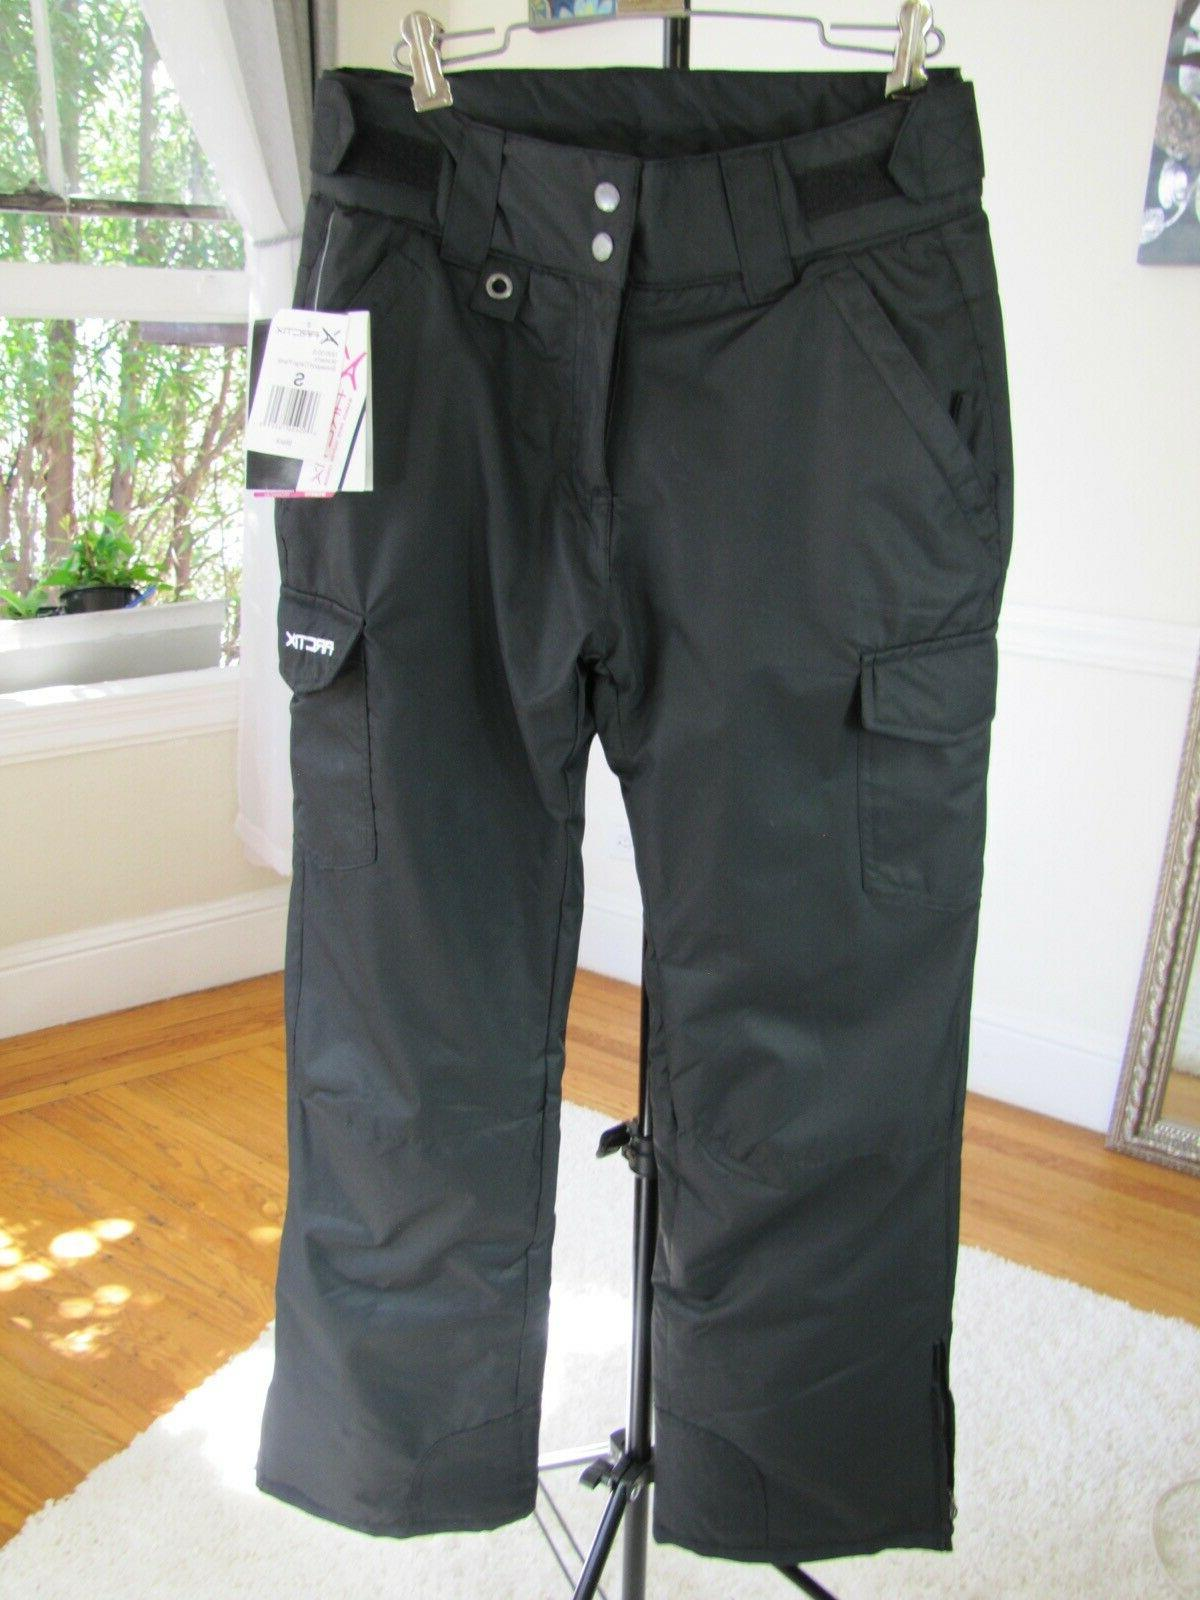 Arctix Women's Black Snowboard Ski Pants Insulated NEW! Size